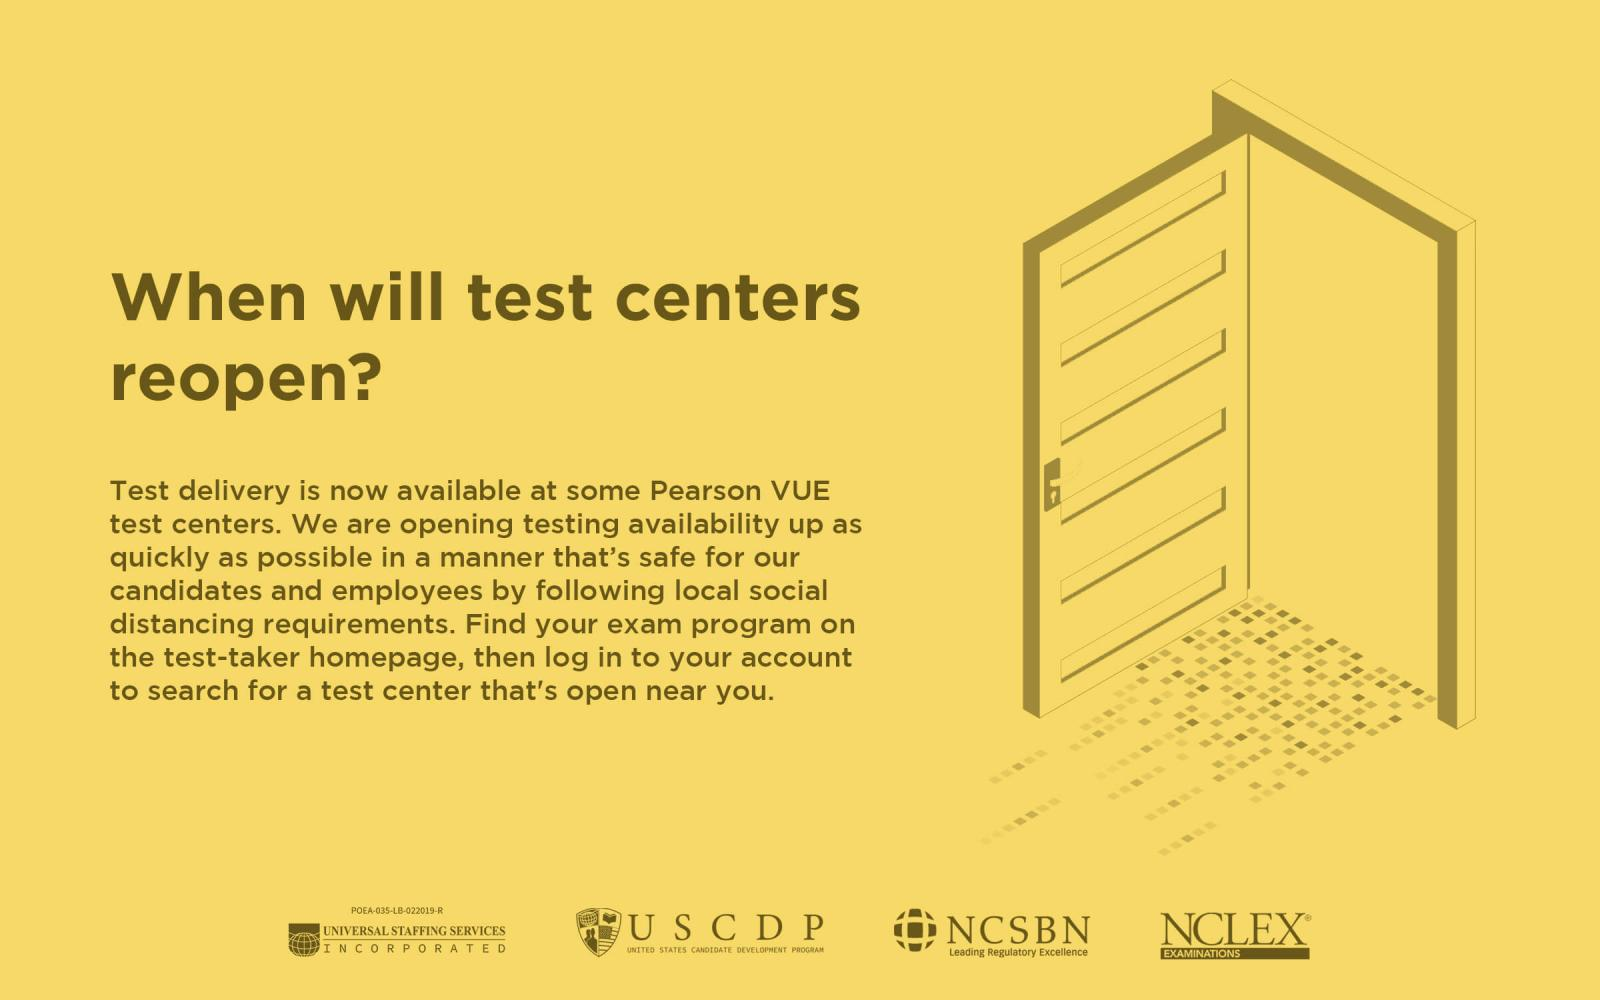 Pearson Vue FAQs infographic #5